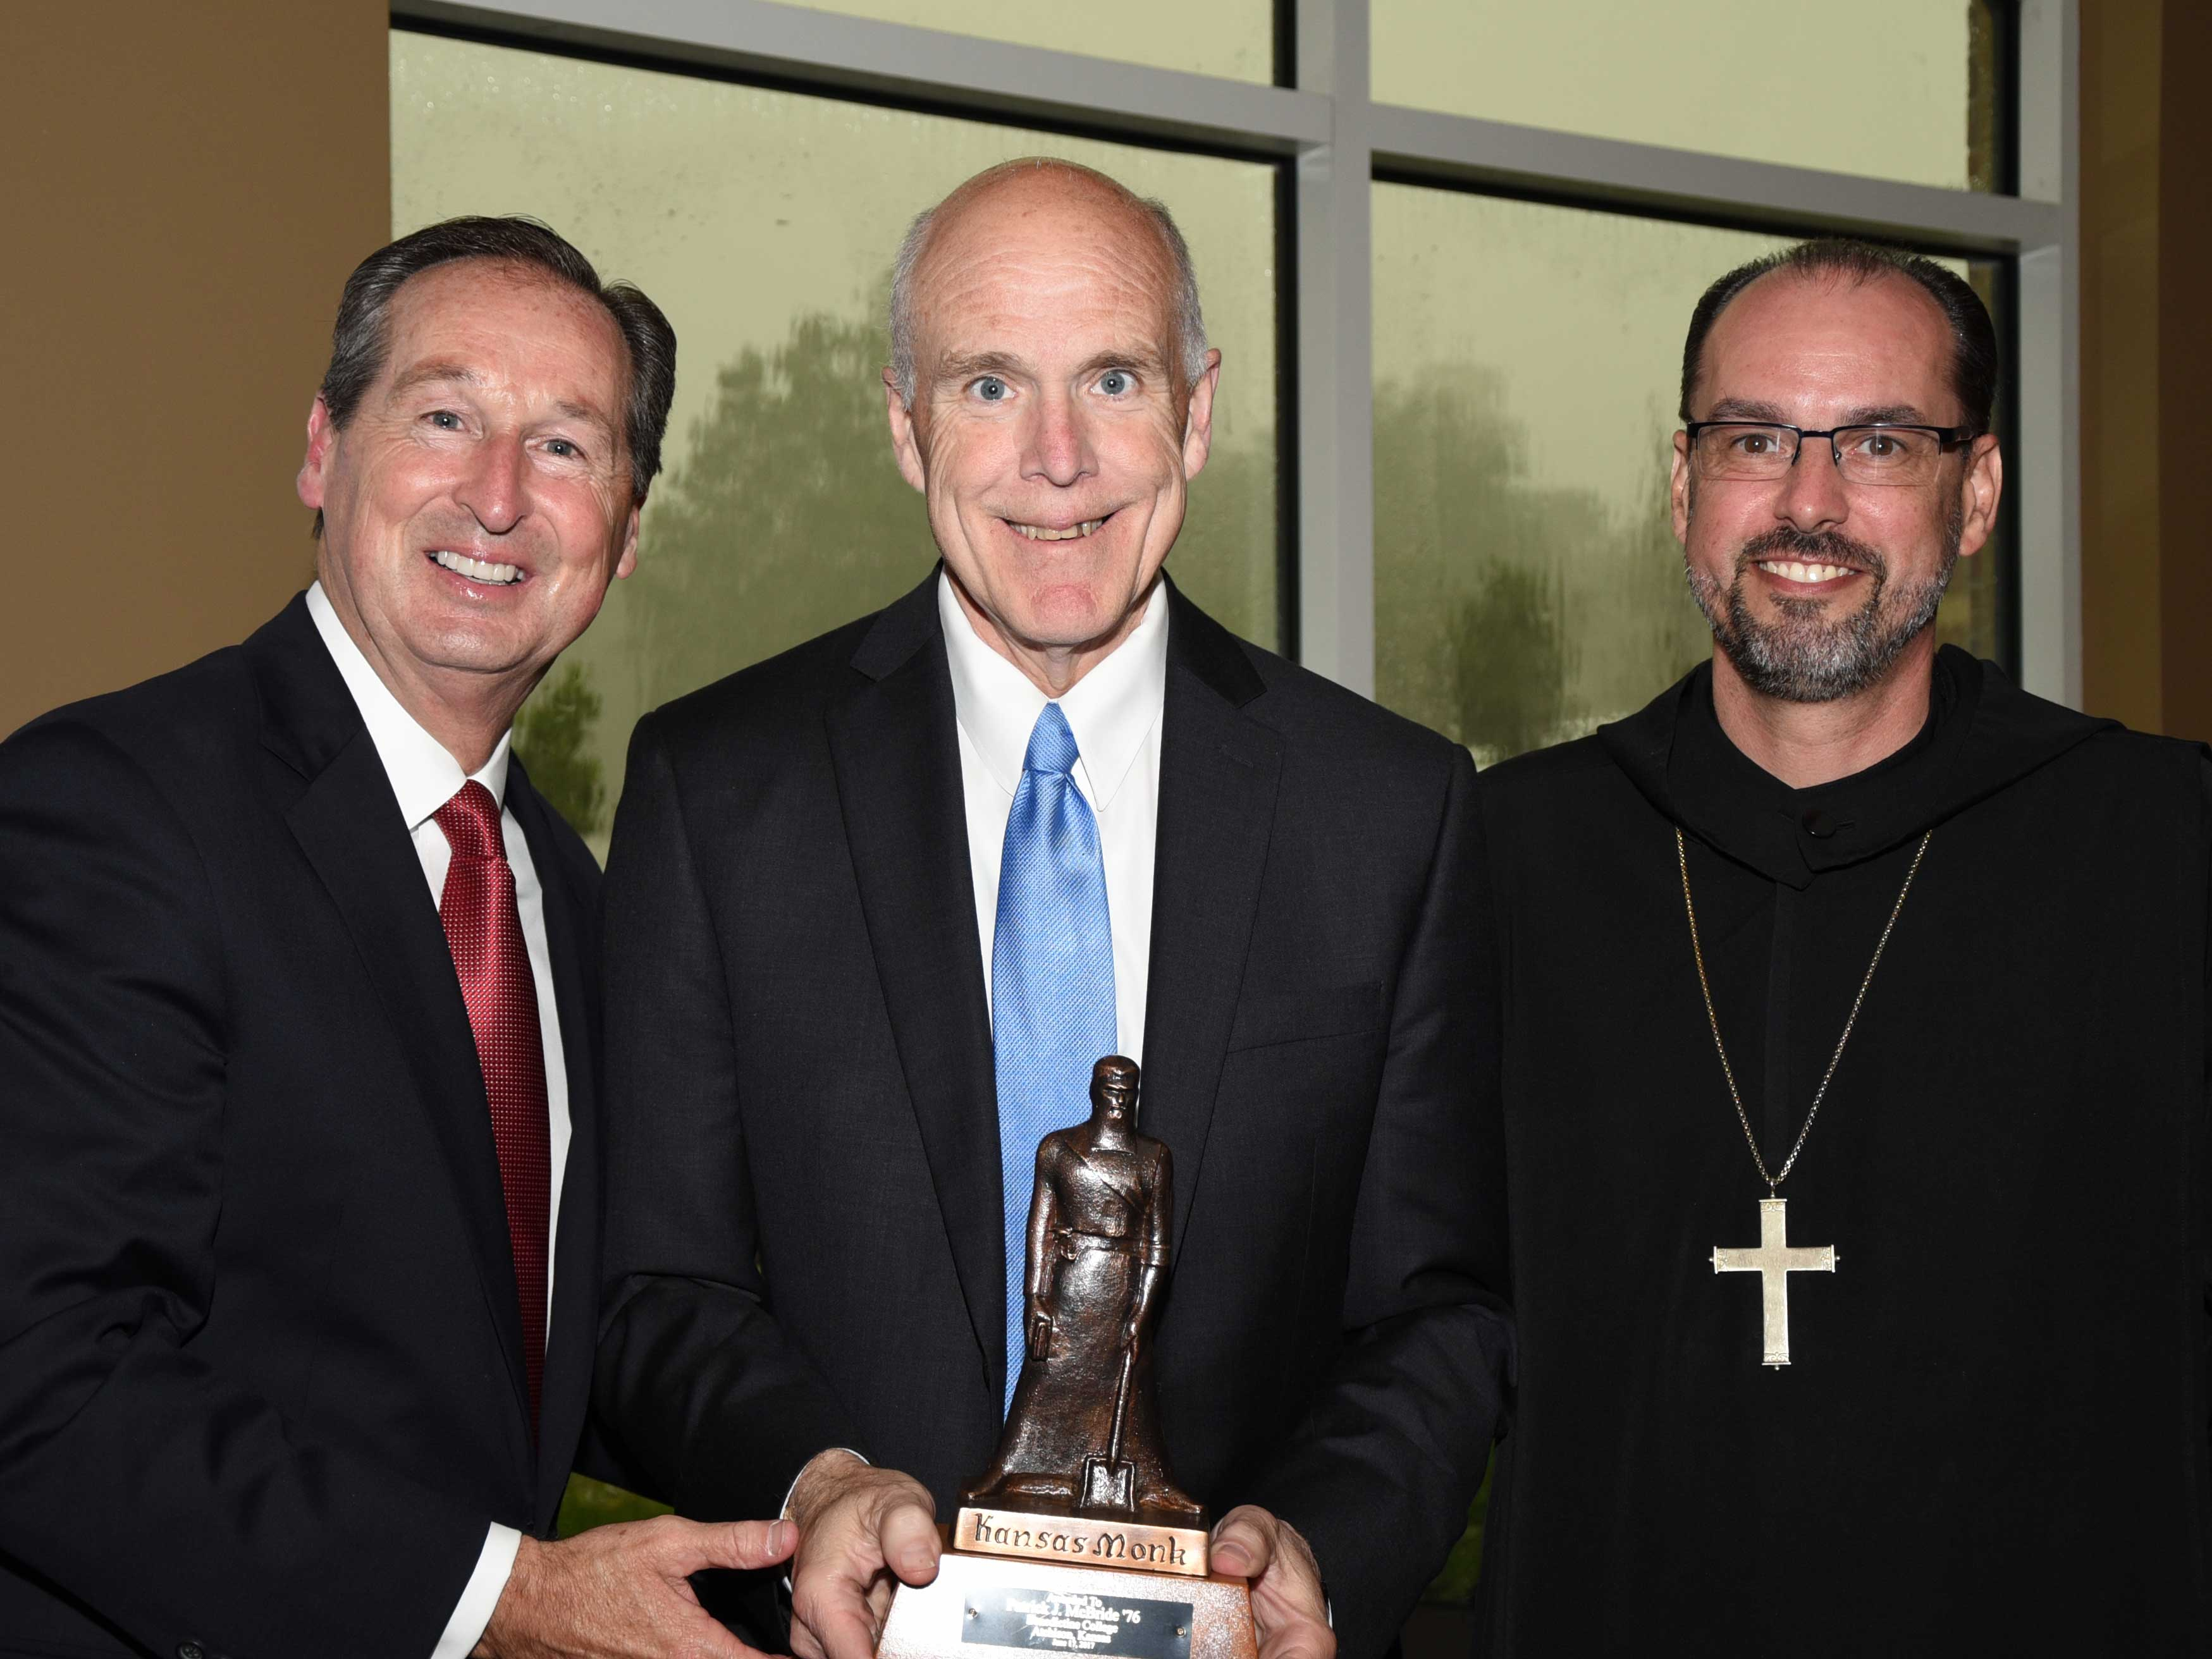 Pat McBride, recipient of the Kansas Monk Award from Benedictine College.